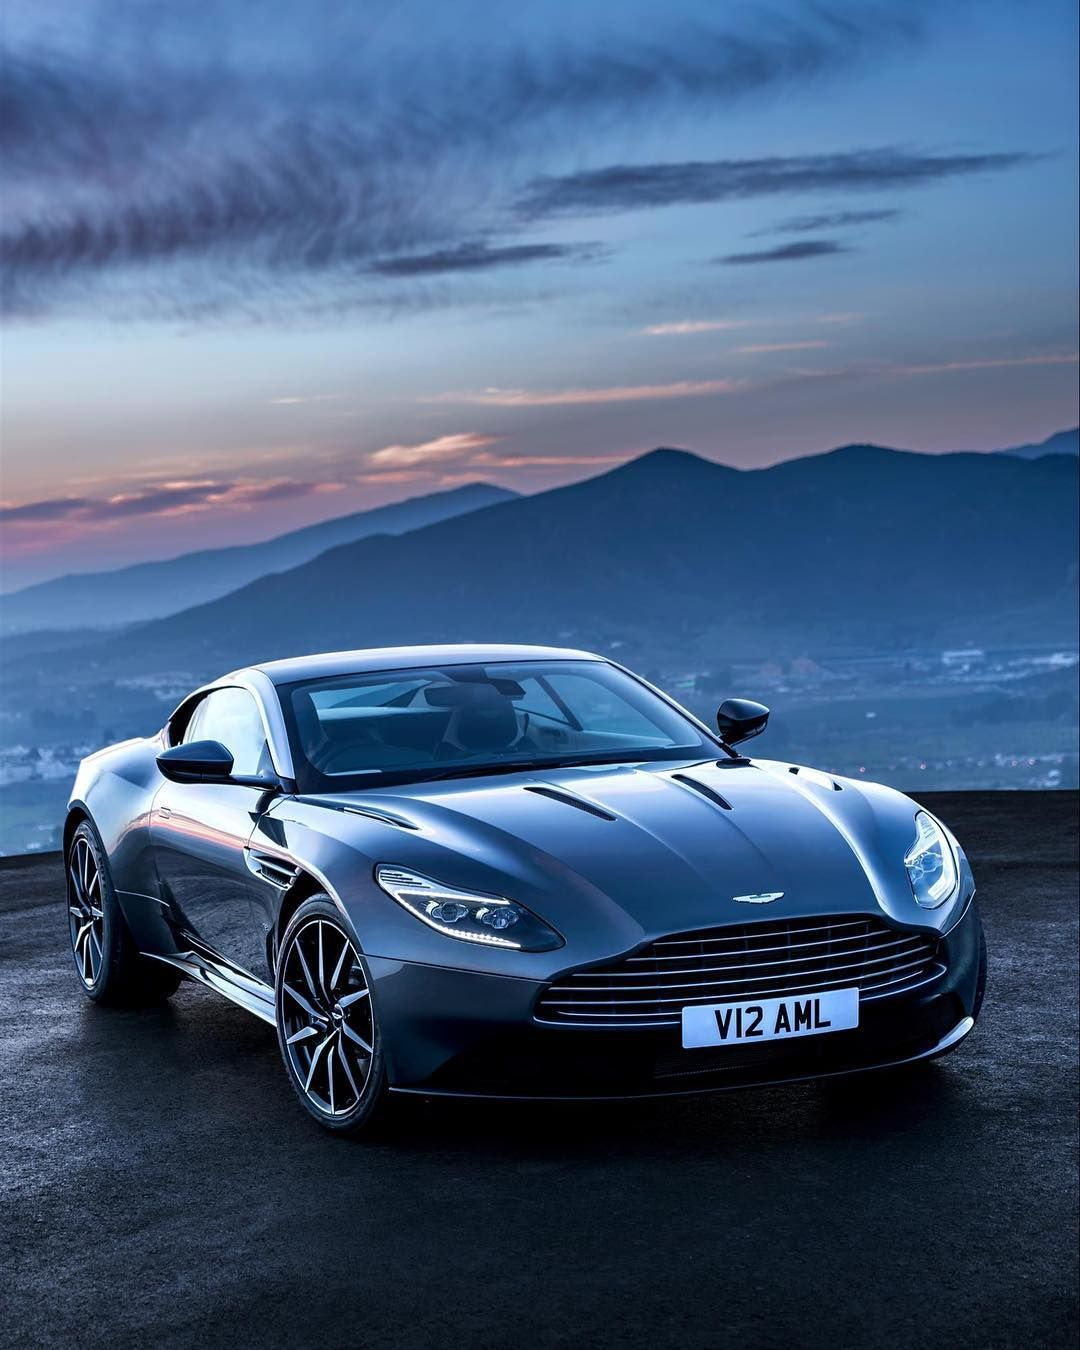 Best Affordable Luxury Sports Cars Best Photos Aston Martin Db11 Sports Cars Luxury Aston Martin Cars